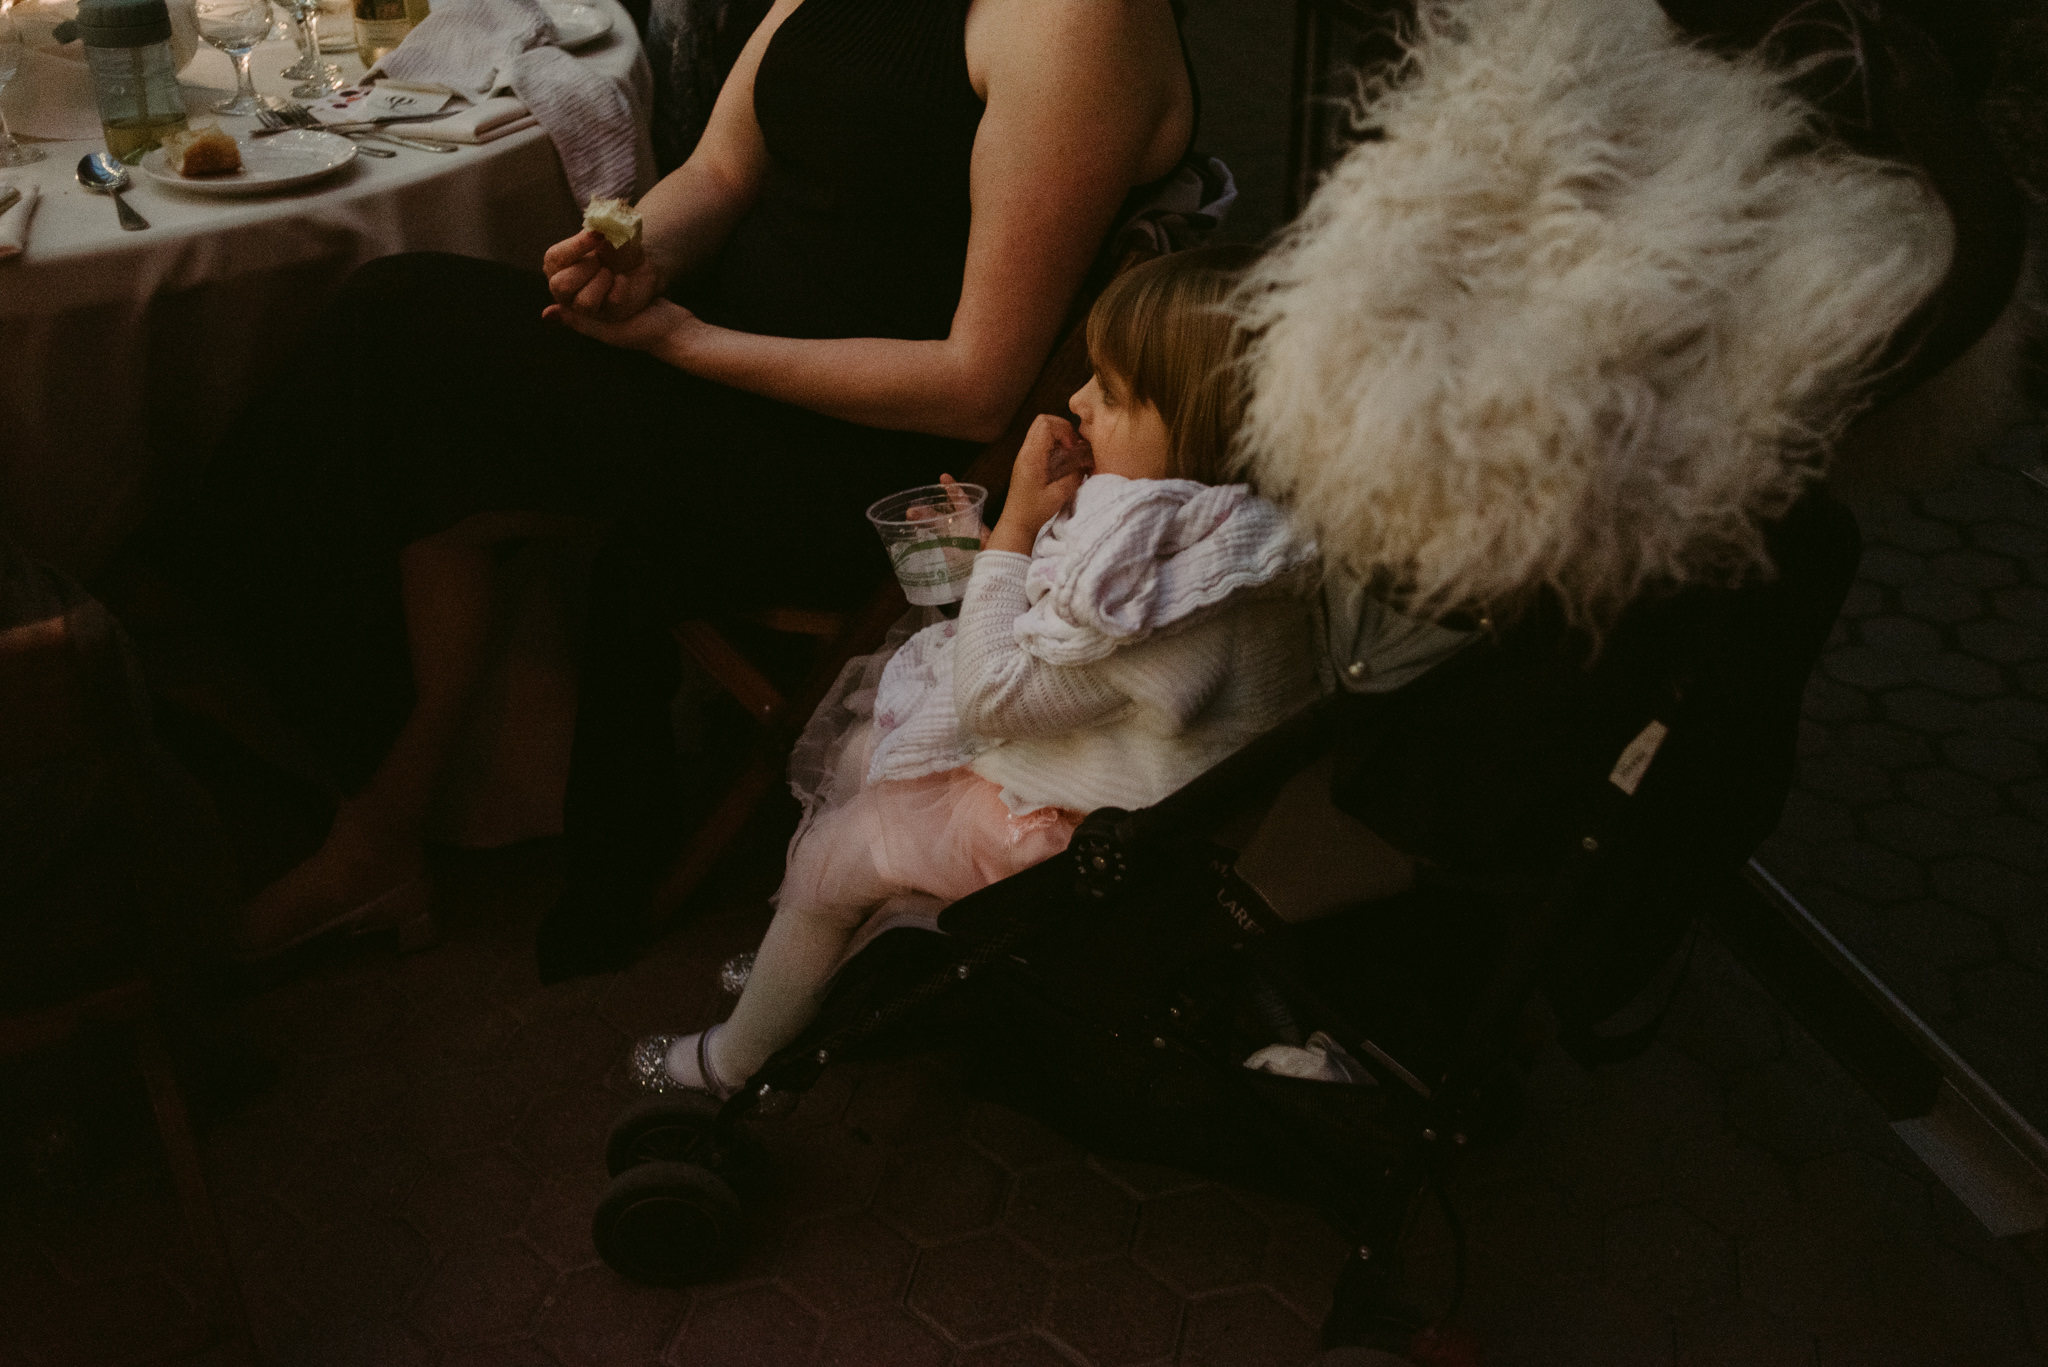 Little girl in stroller at wedding reception